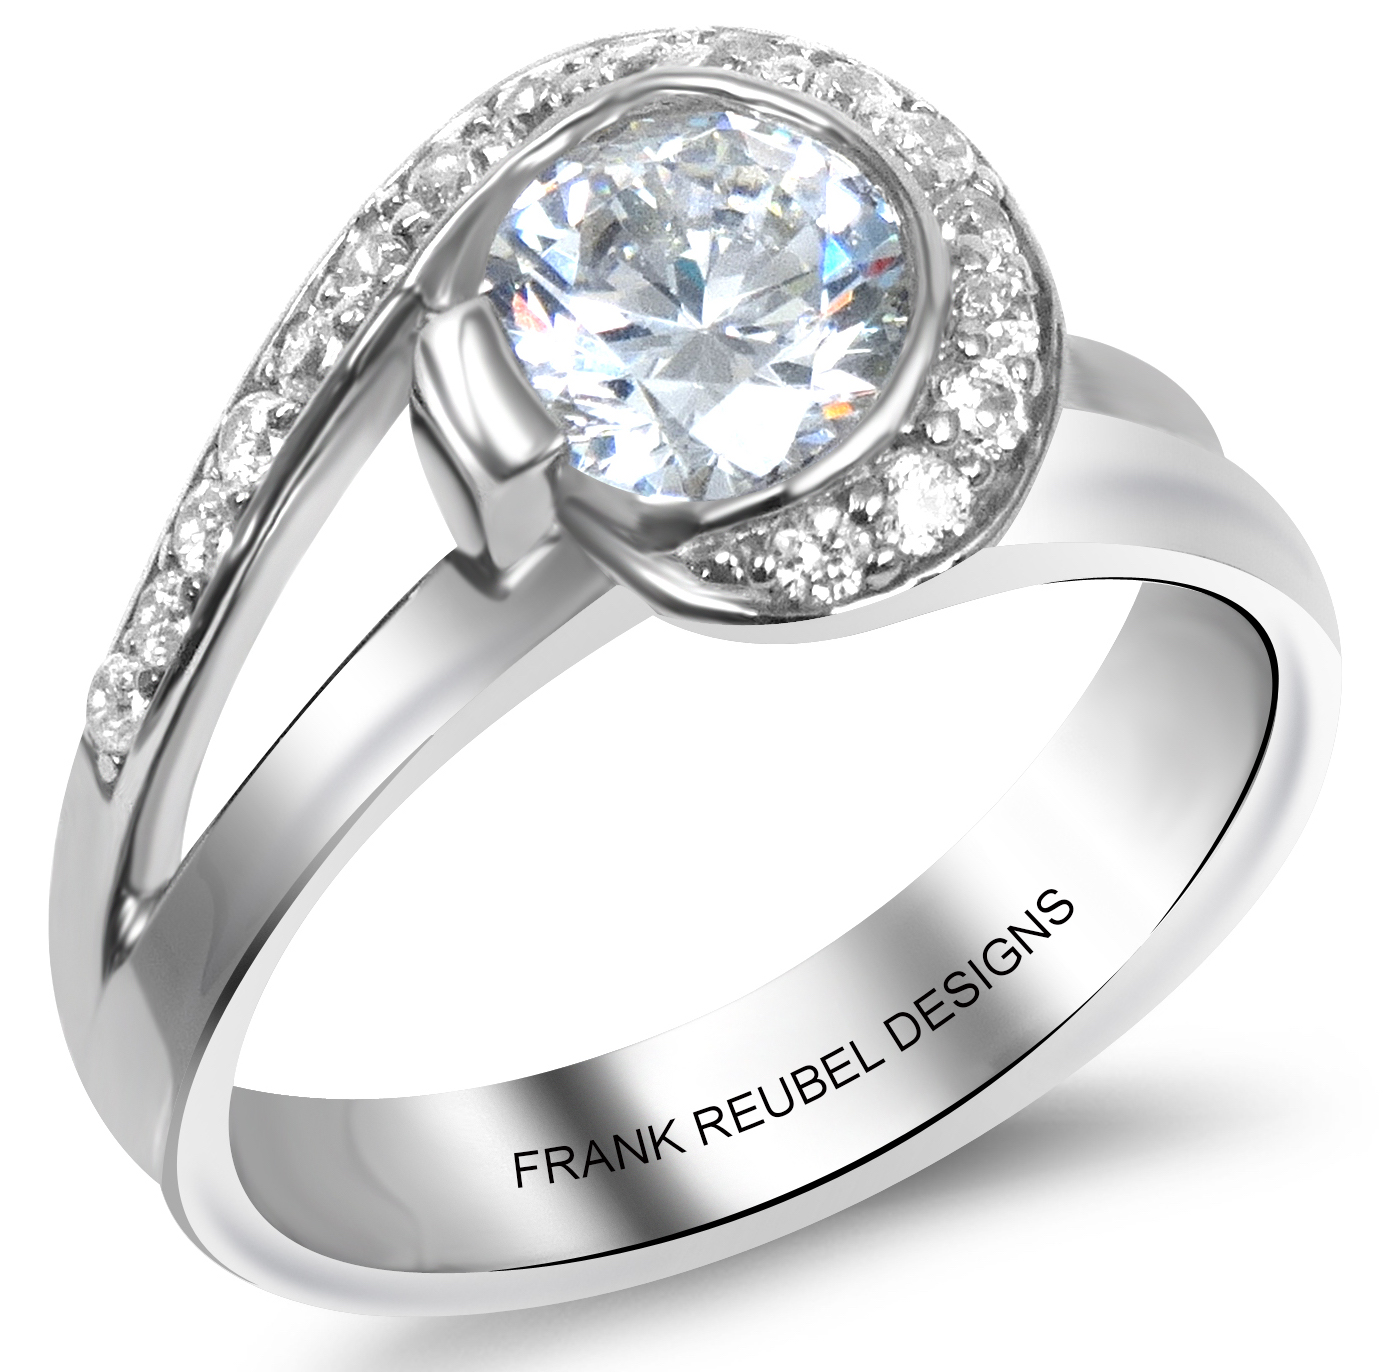 Frank Reubel half bezel diamond engagement ring | JCK On Your Market